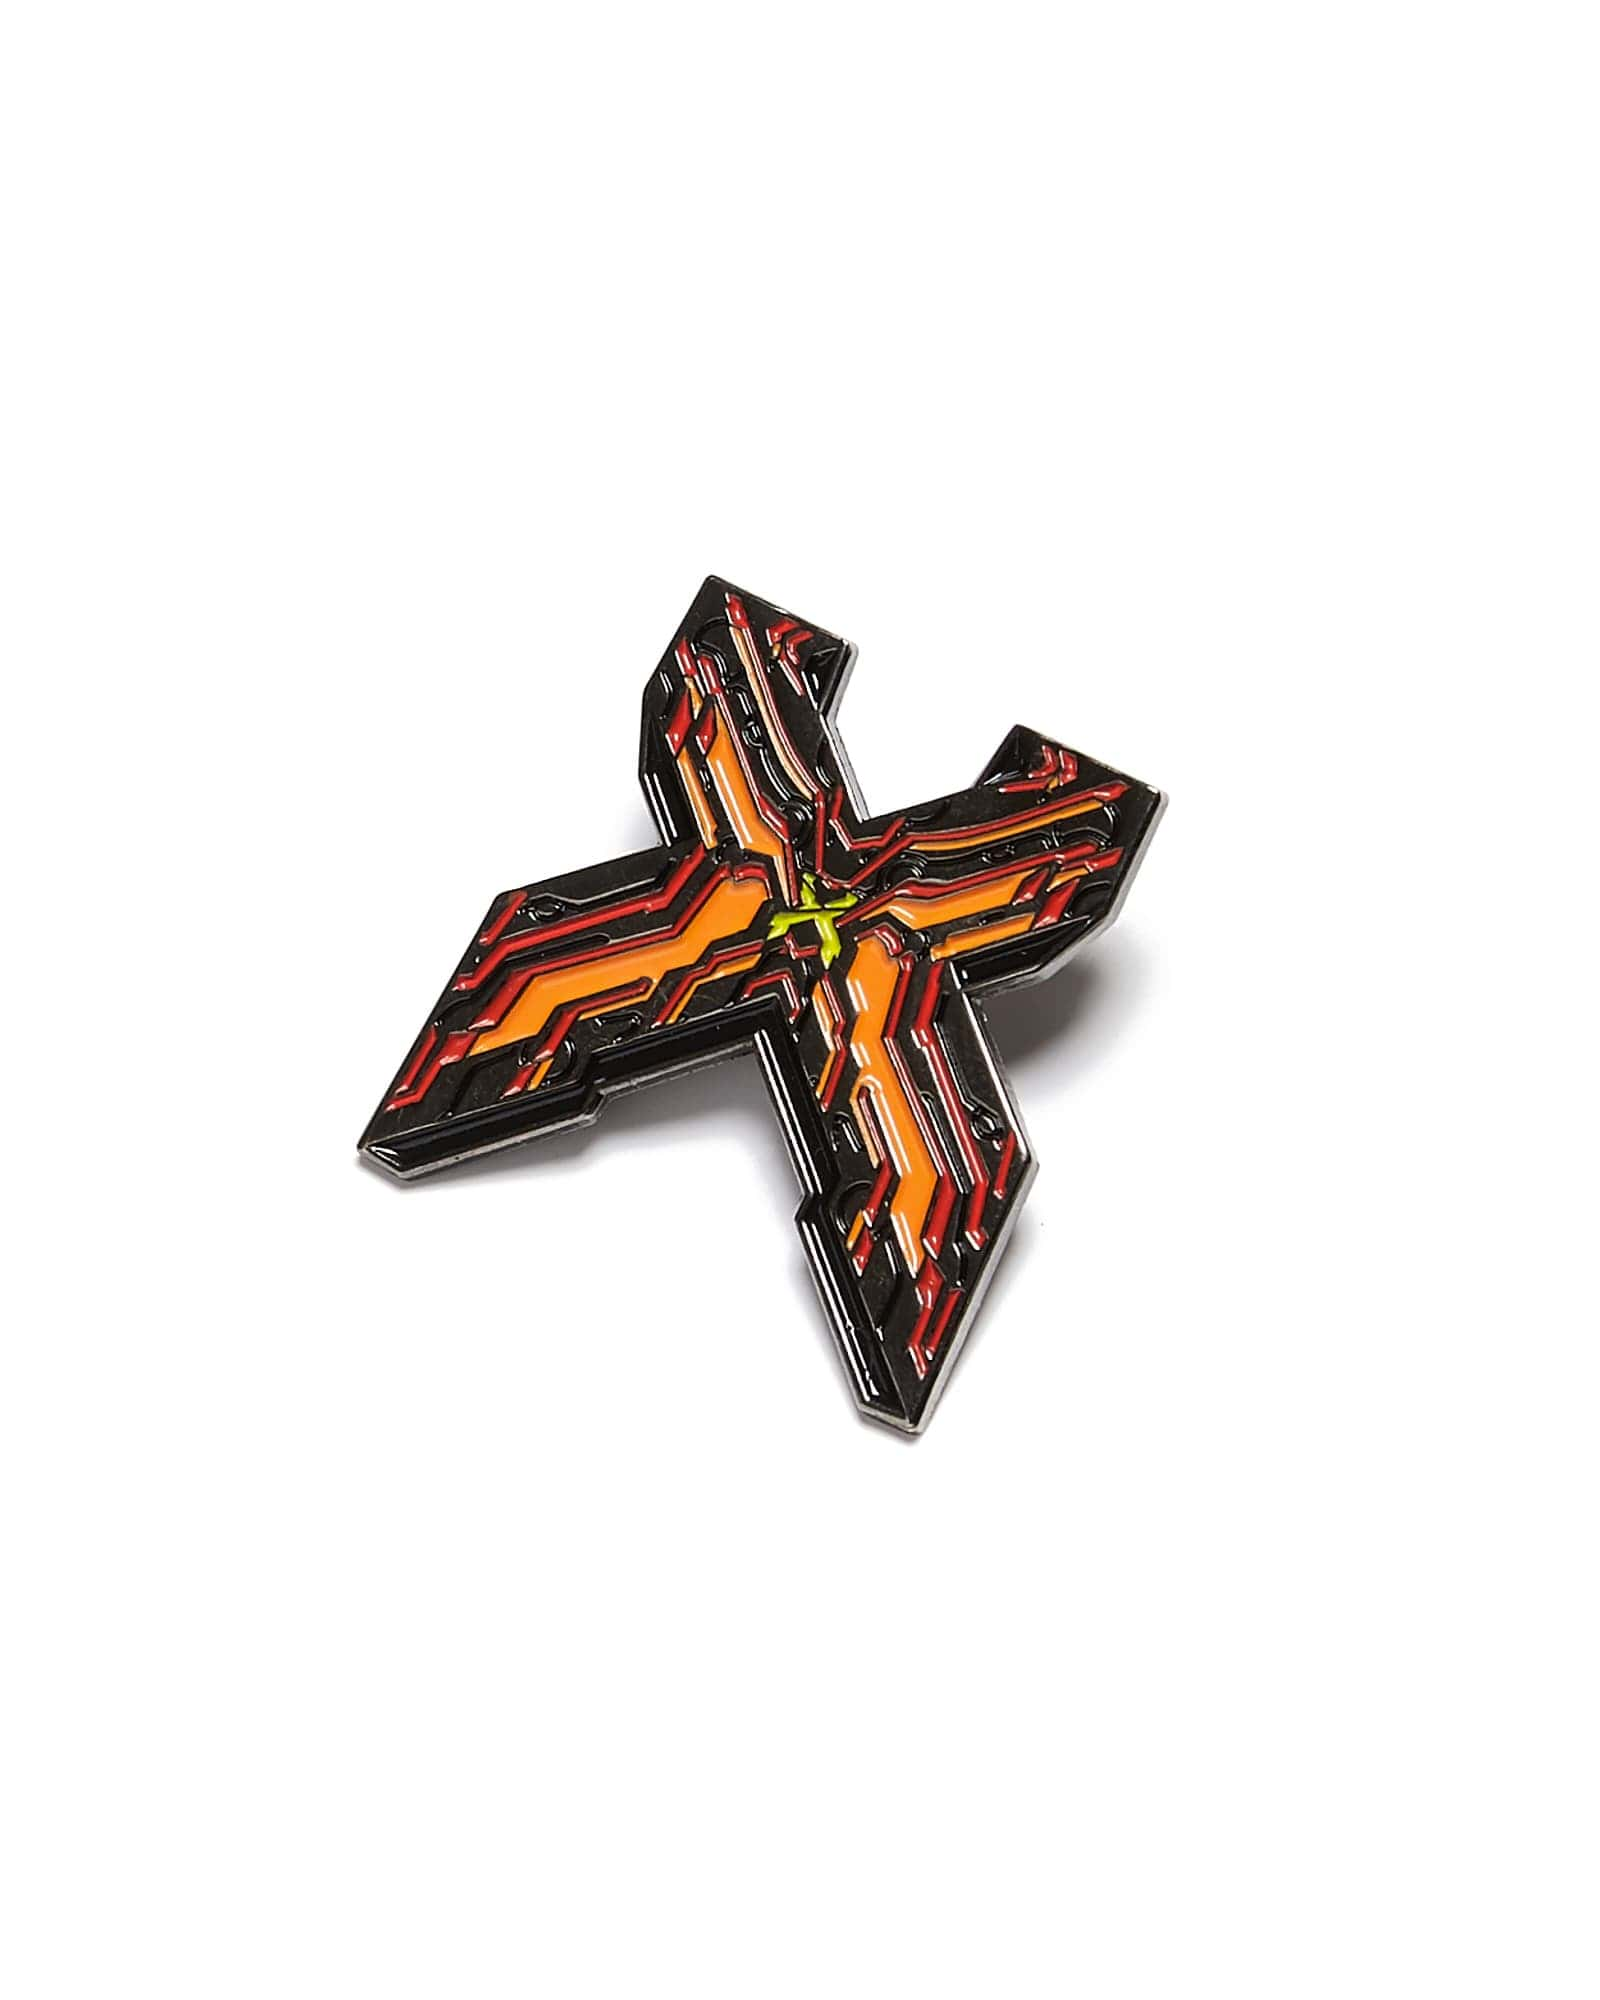 Excision 'Apex' Pin